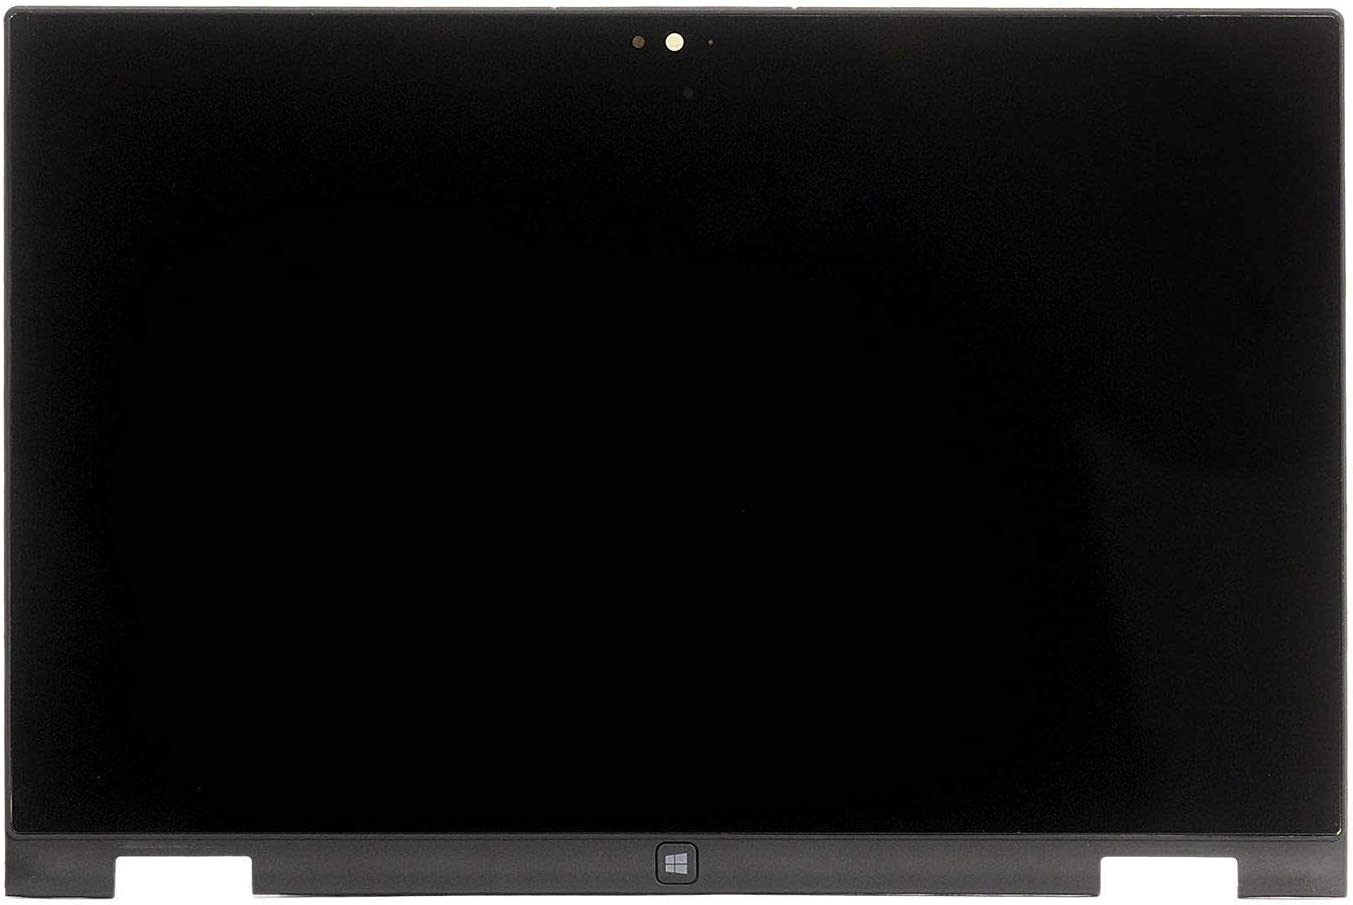 """JYLTK 11.6"""" WXGA HD LCD Screen LED Display + Touch Digitizer + Bezel Frame + Touch Control Board Assembly F49R5 0F49R5 for Dell Inspiron 11 (3147/3148 / 3152/3153)"""